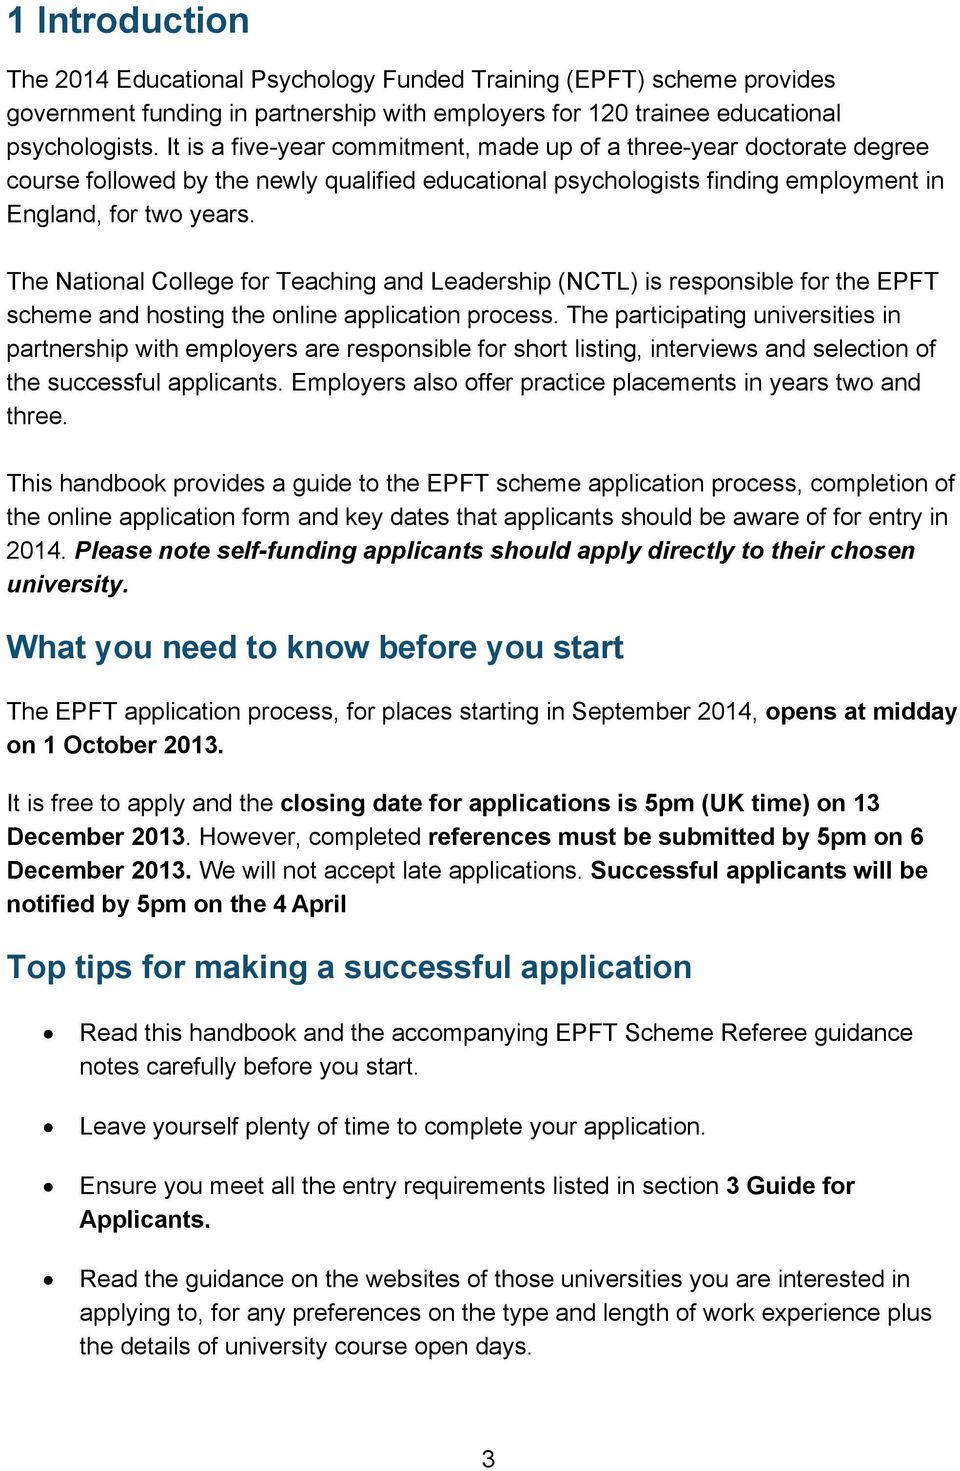 The National College for Teaching and Leadership (NCTL) is responsible for the EPFT scheme and hosting the online application process.